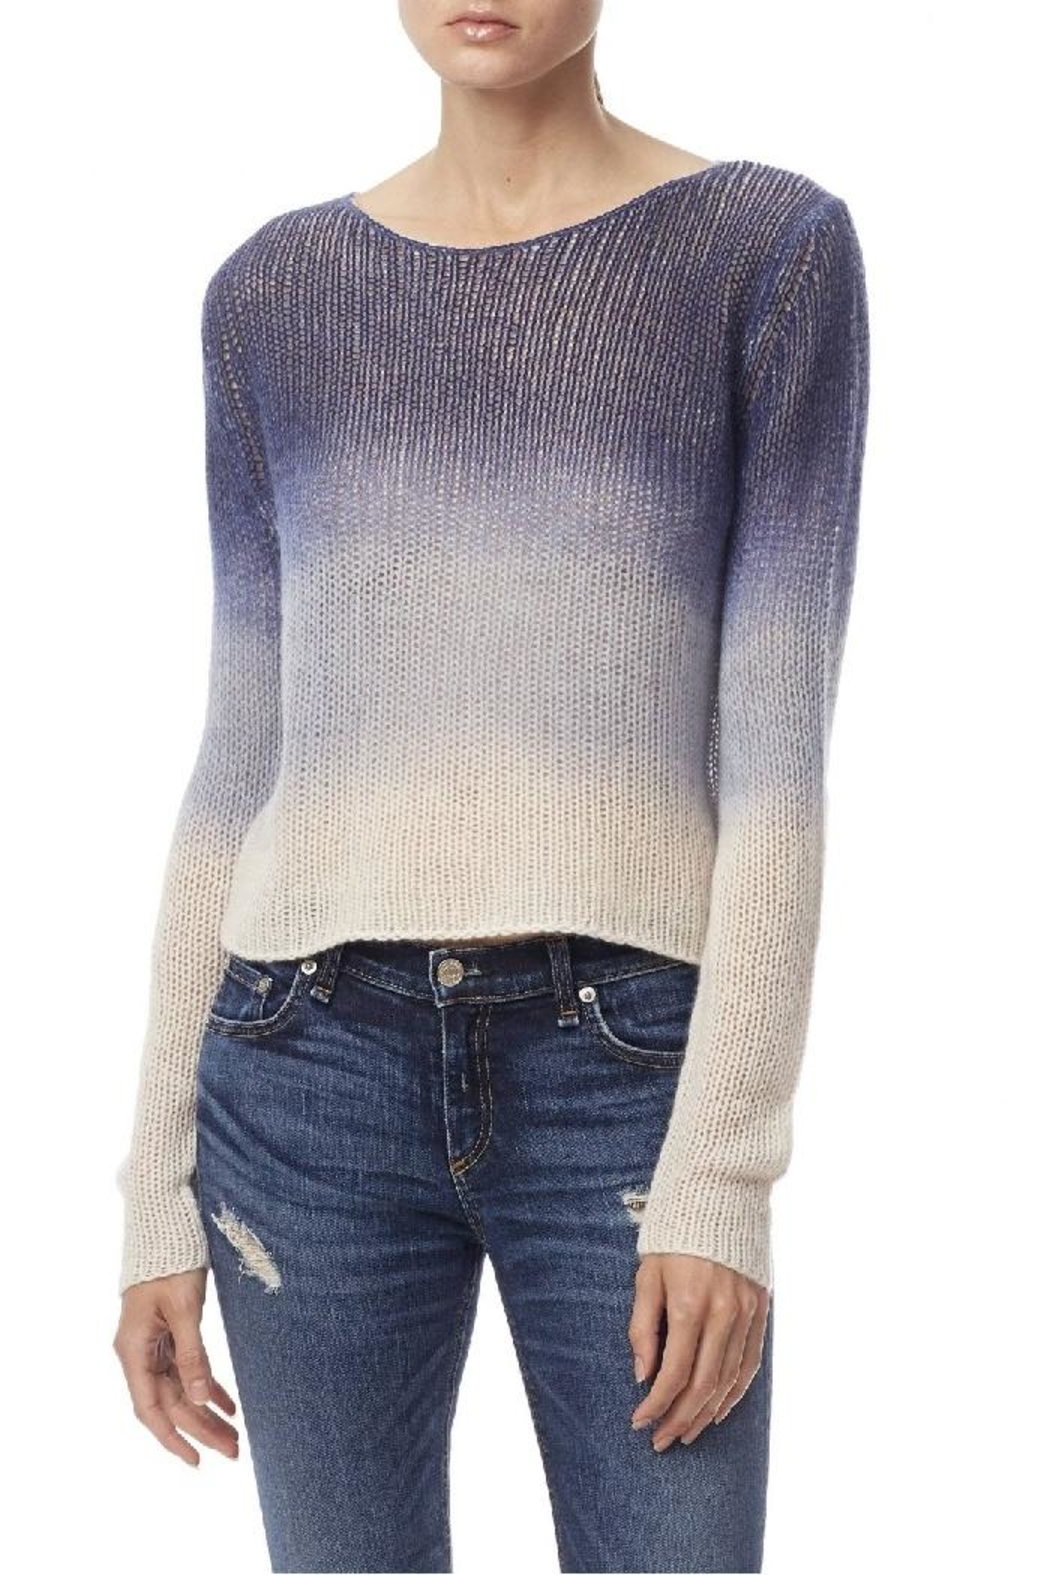 360 Cashmere Katarina Pullover Sweater - Front Cropped Image